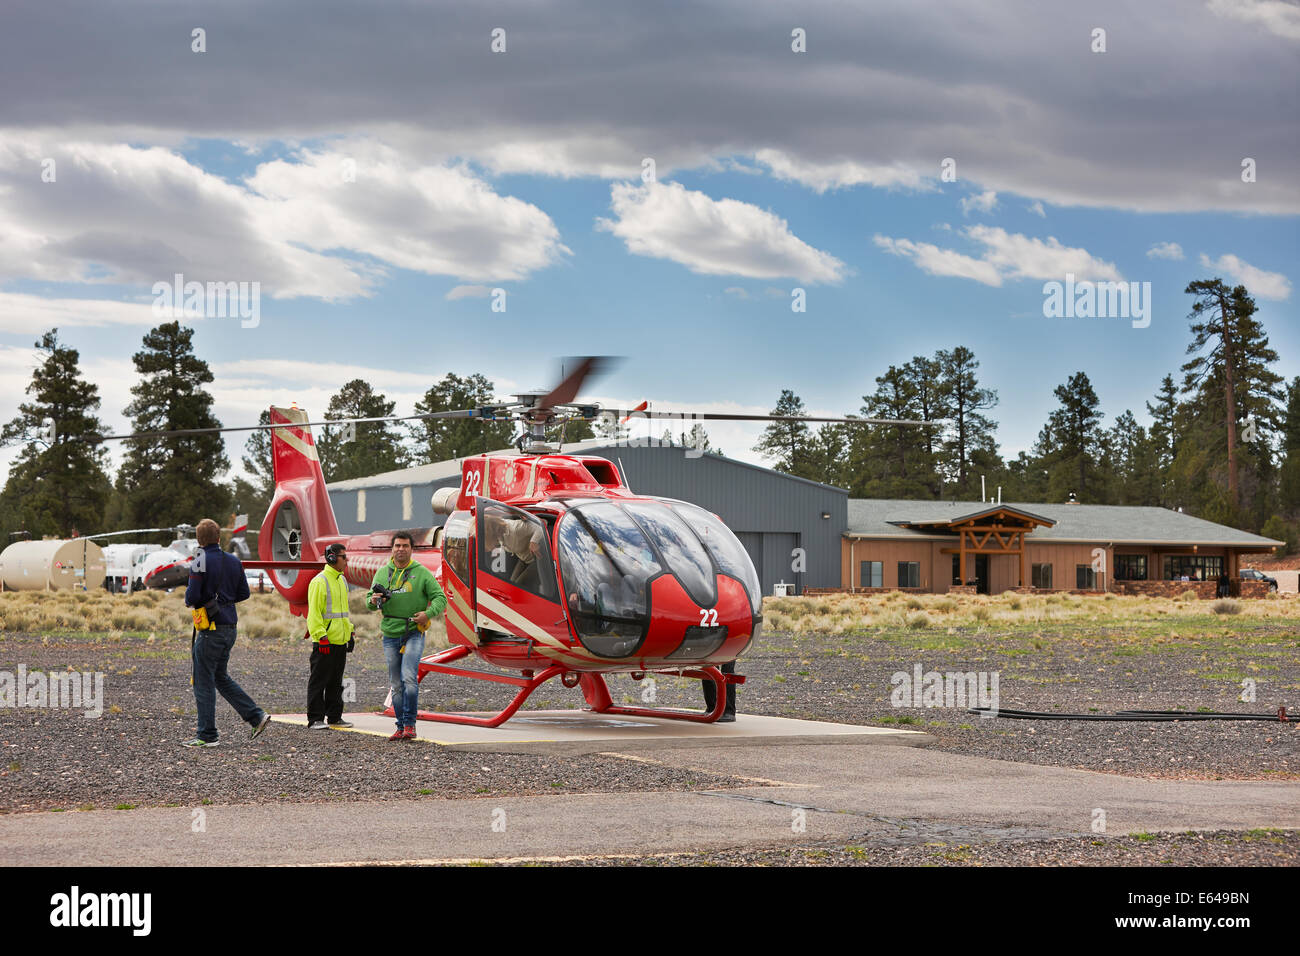 Heliport in Grand Canyon Village. Arizona, USA. - Stock Image